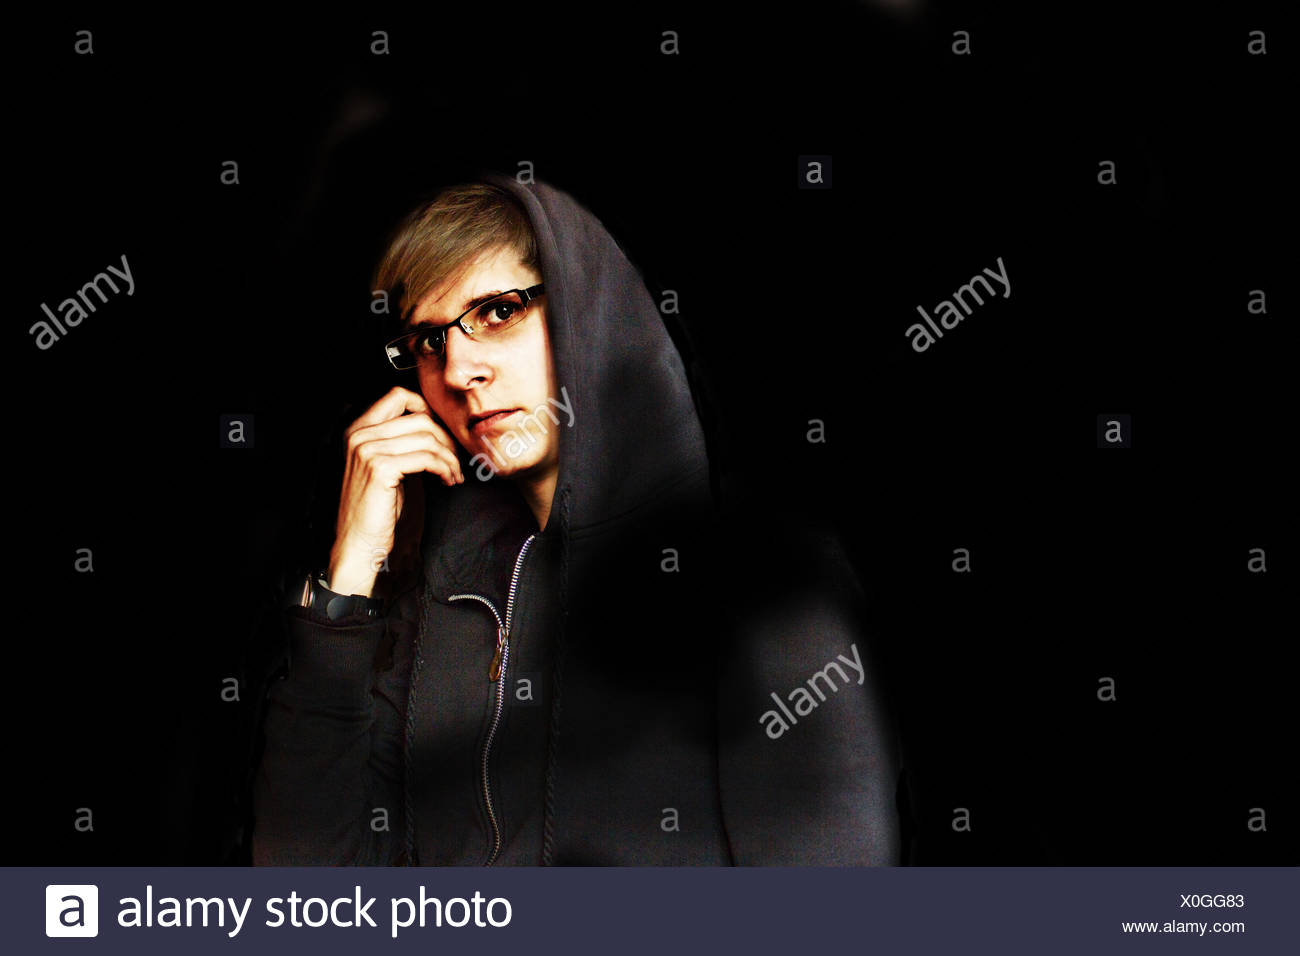 Young woman in sweat jacket with hood in the dark - Stock Image